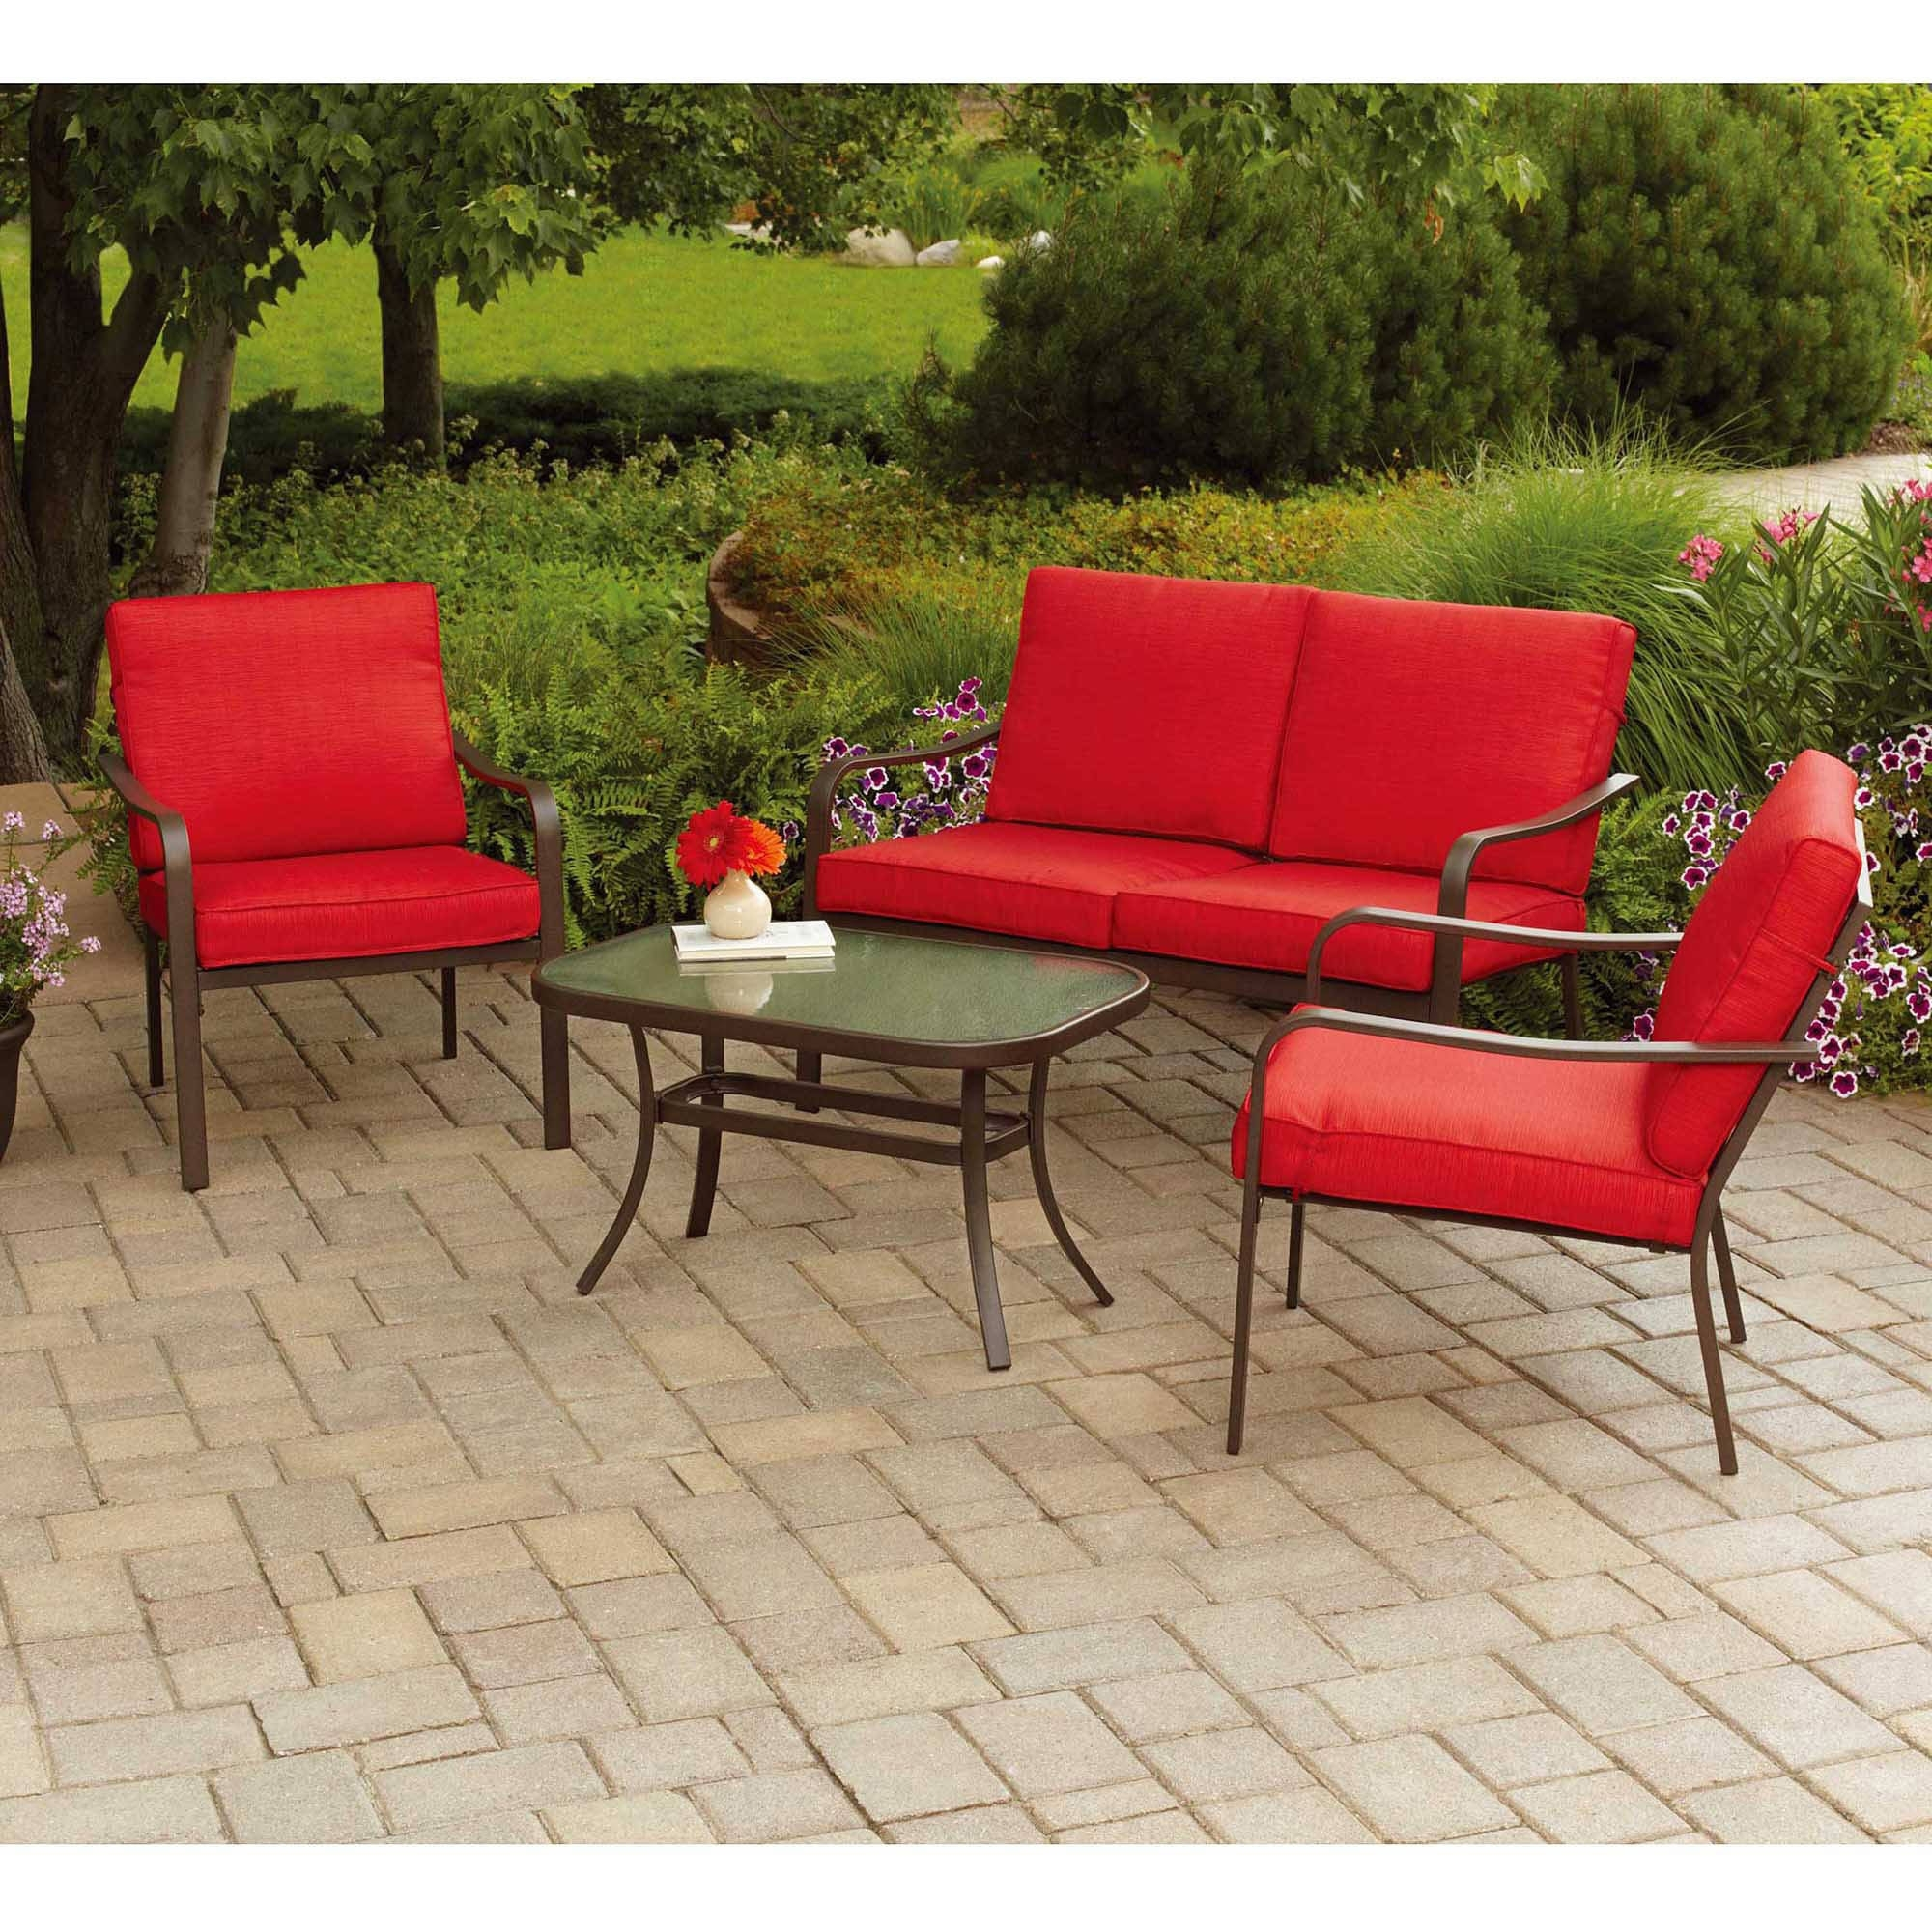 Most Up To Date Patio Conversation Sets At Walmart Within Mainstays Stanton Cushioned 4 Piece Patio Conversation Set, Red (View 3 of 15)